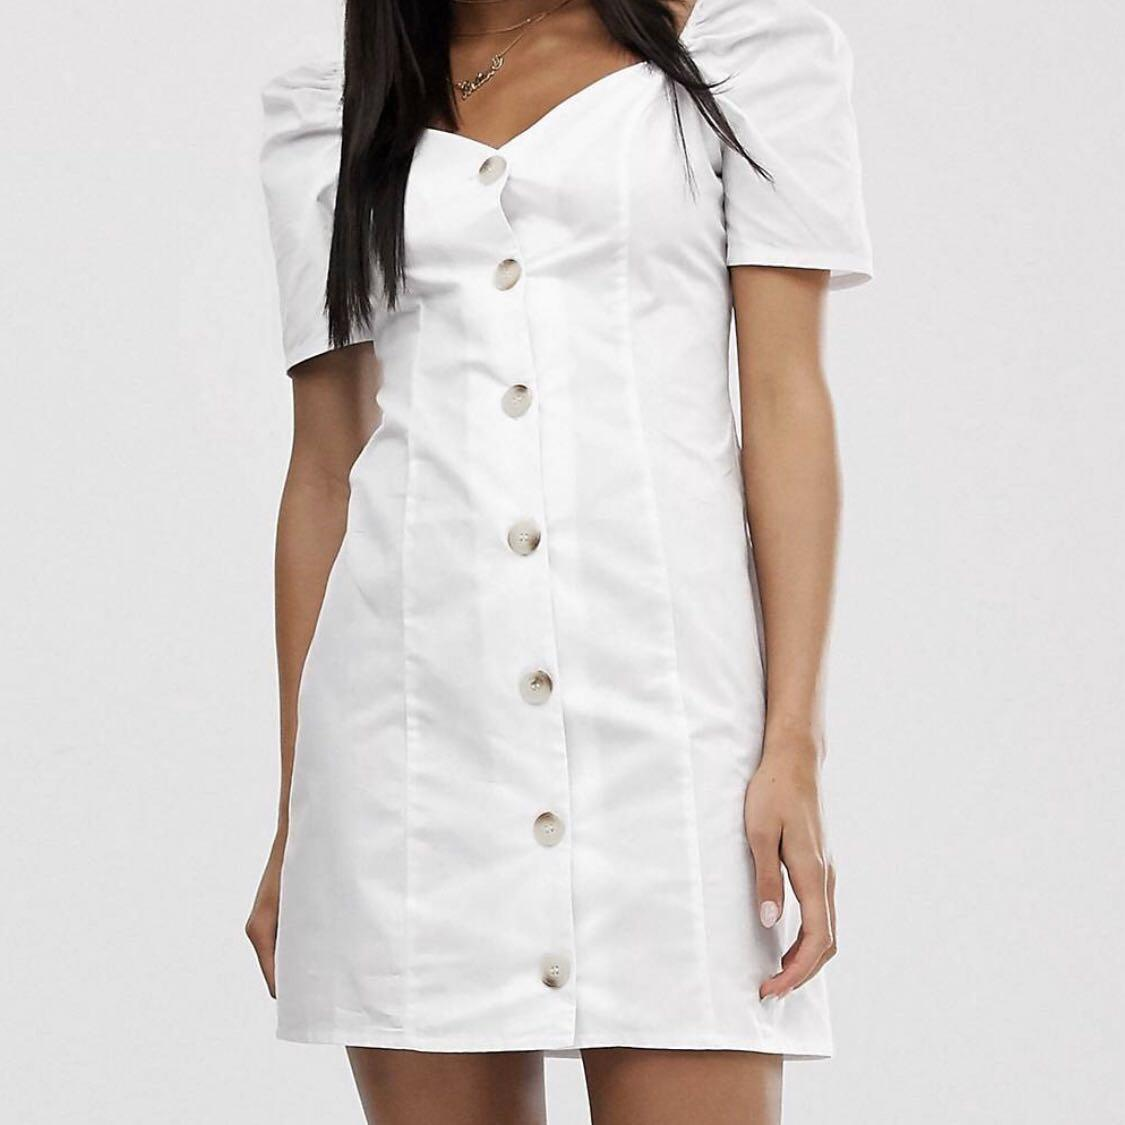 White Button Down Dress with Sweetheart Neckline and Puff Sleeves